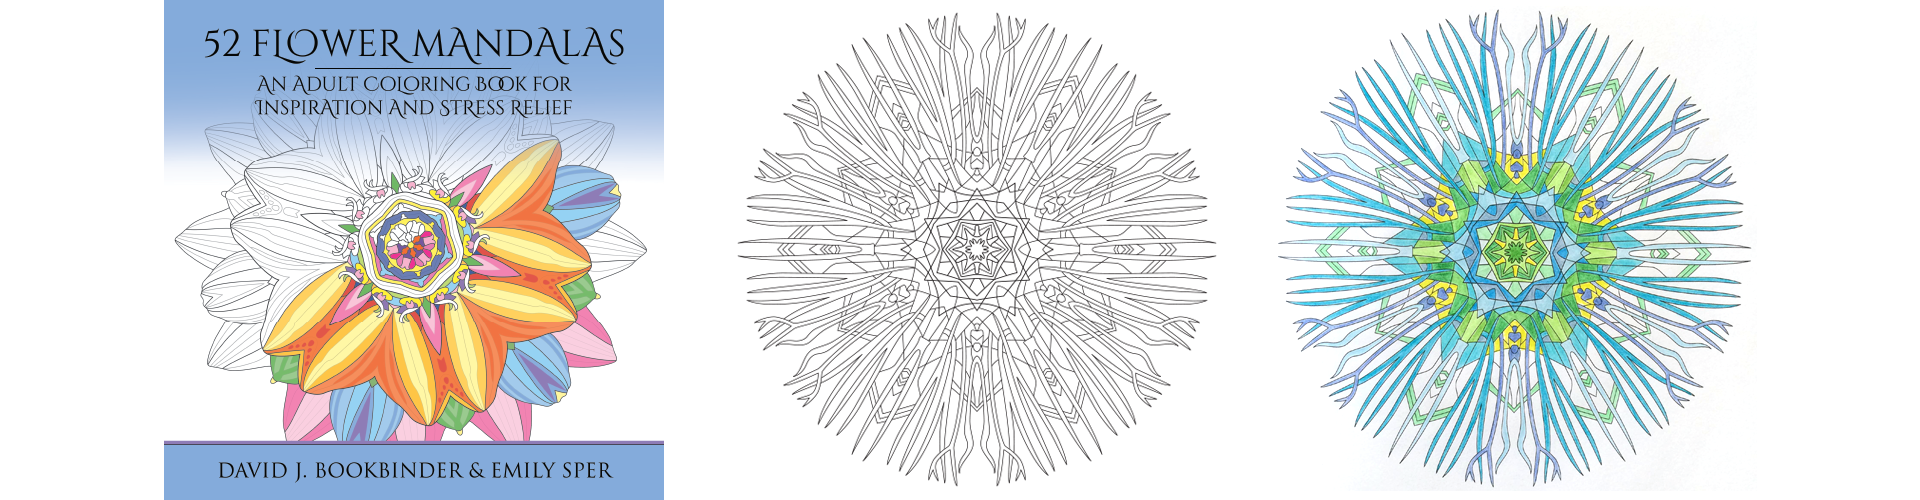 52 Flower Mandalas: An Adult Coloring Book for Inspiration and Stress Relief